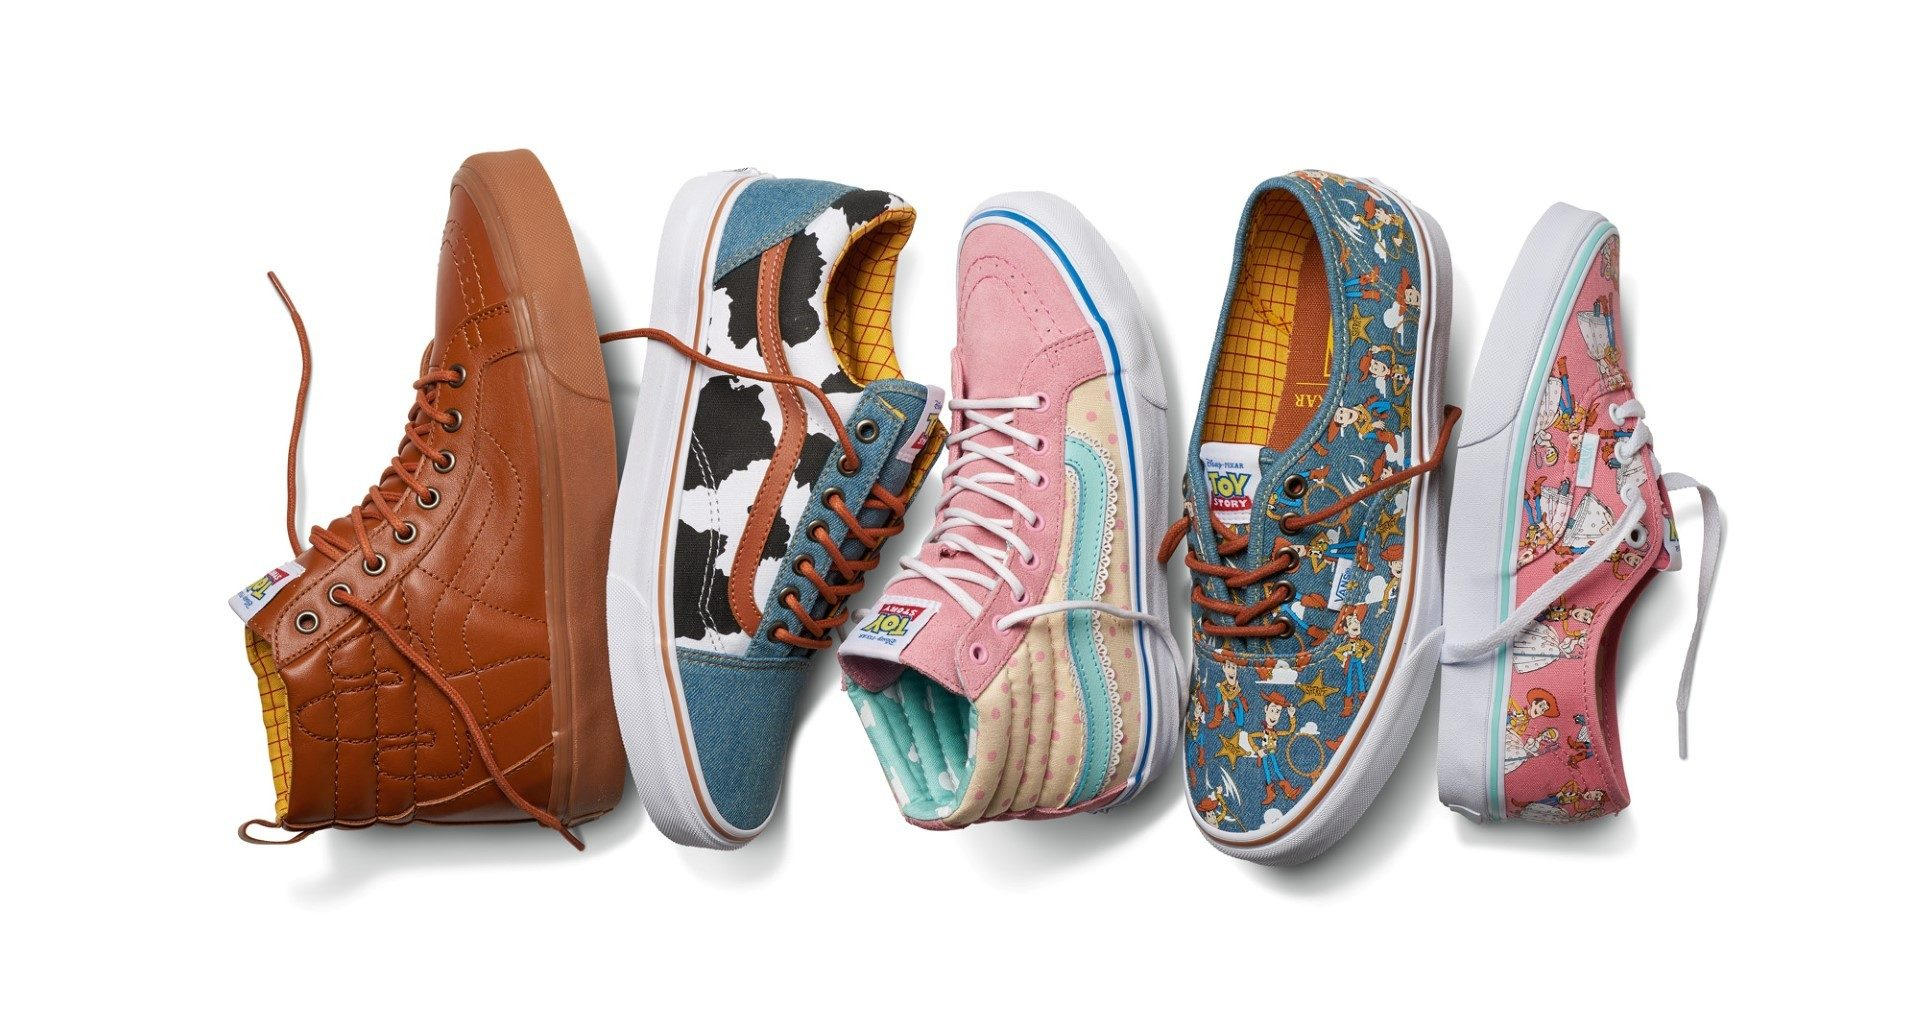 vans collezione toy story